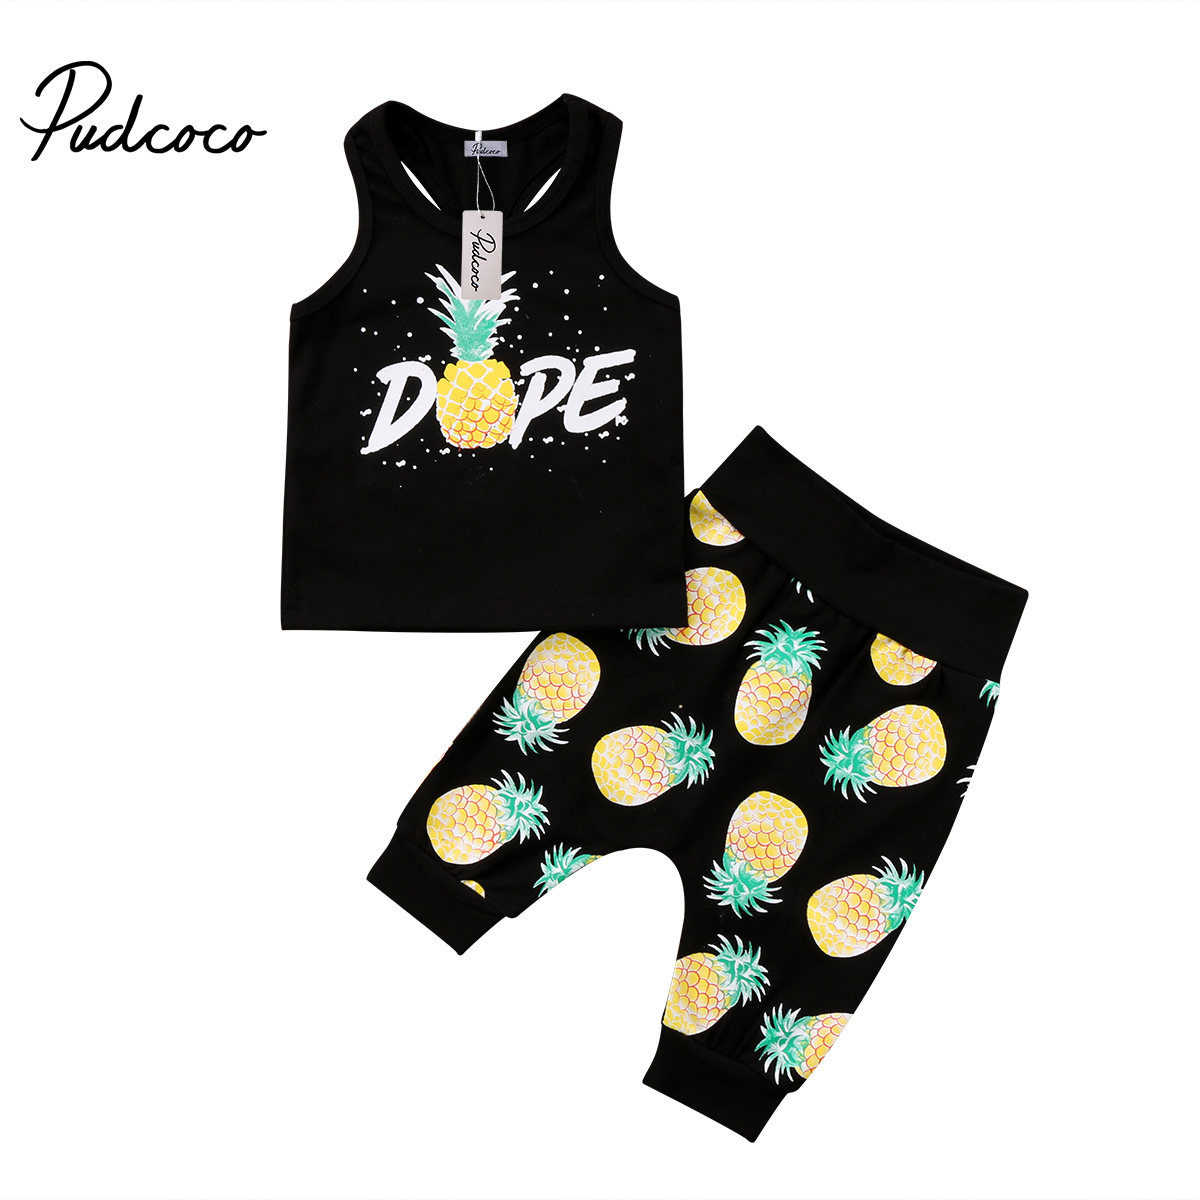 Pudcoco 2PCS Toddler Infant Kid Baby Boys Pineapple Clothing Sleeveless T-shirt Tops Pants Outfits